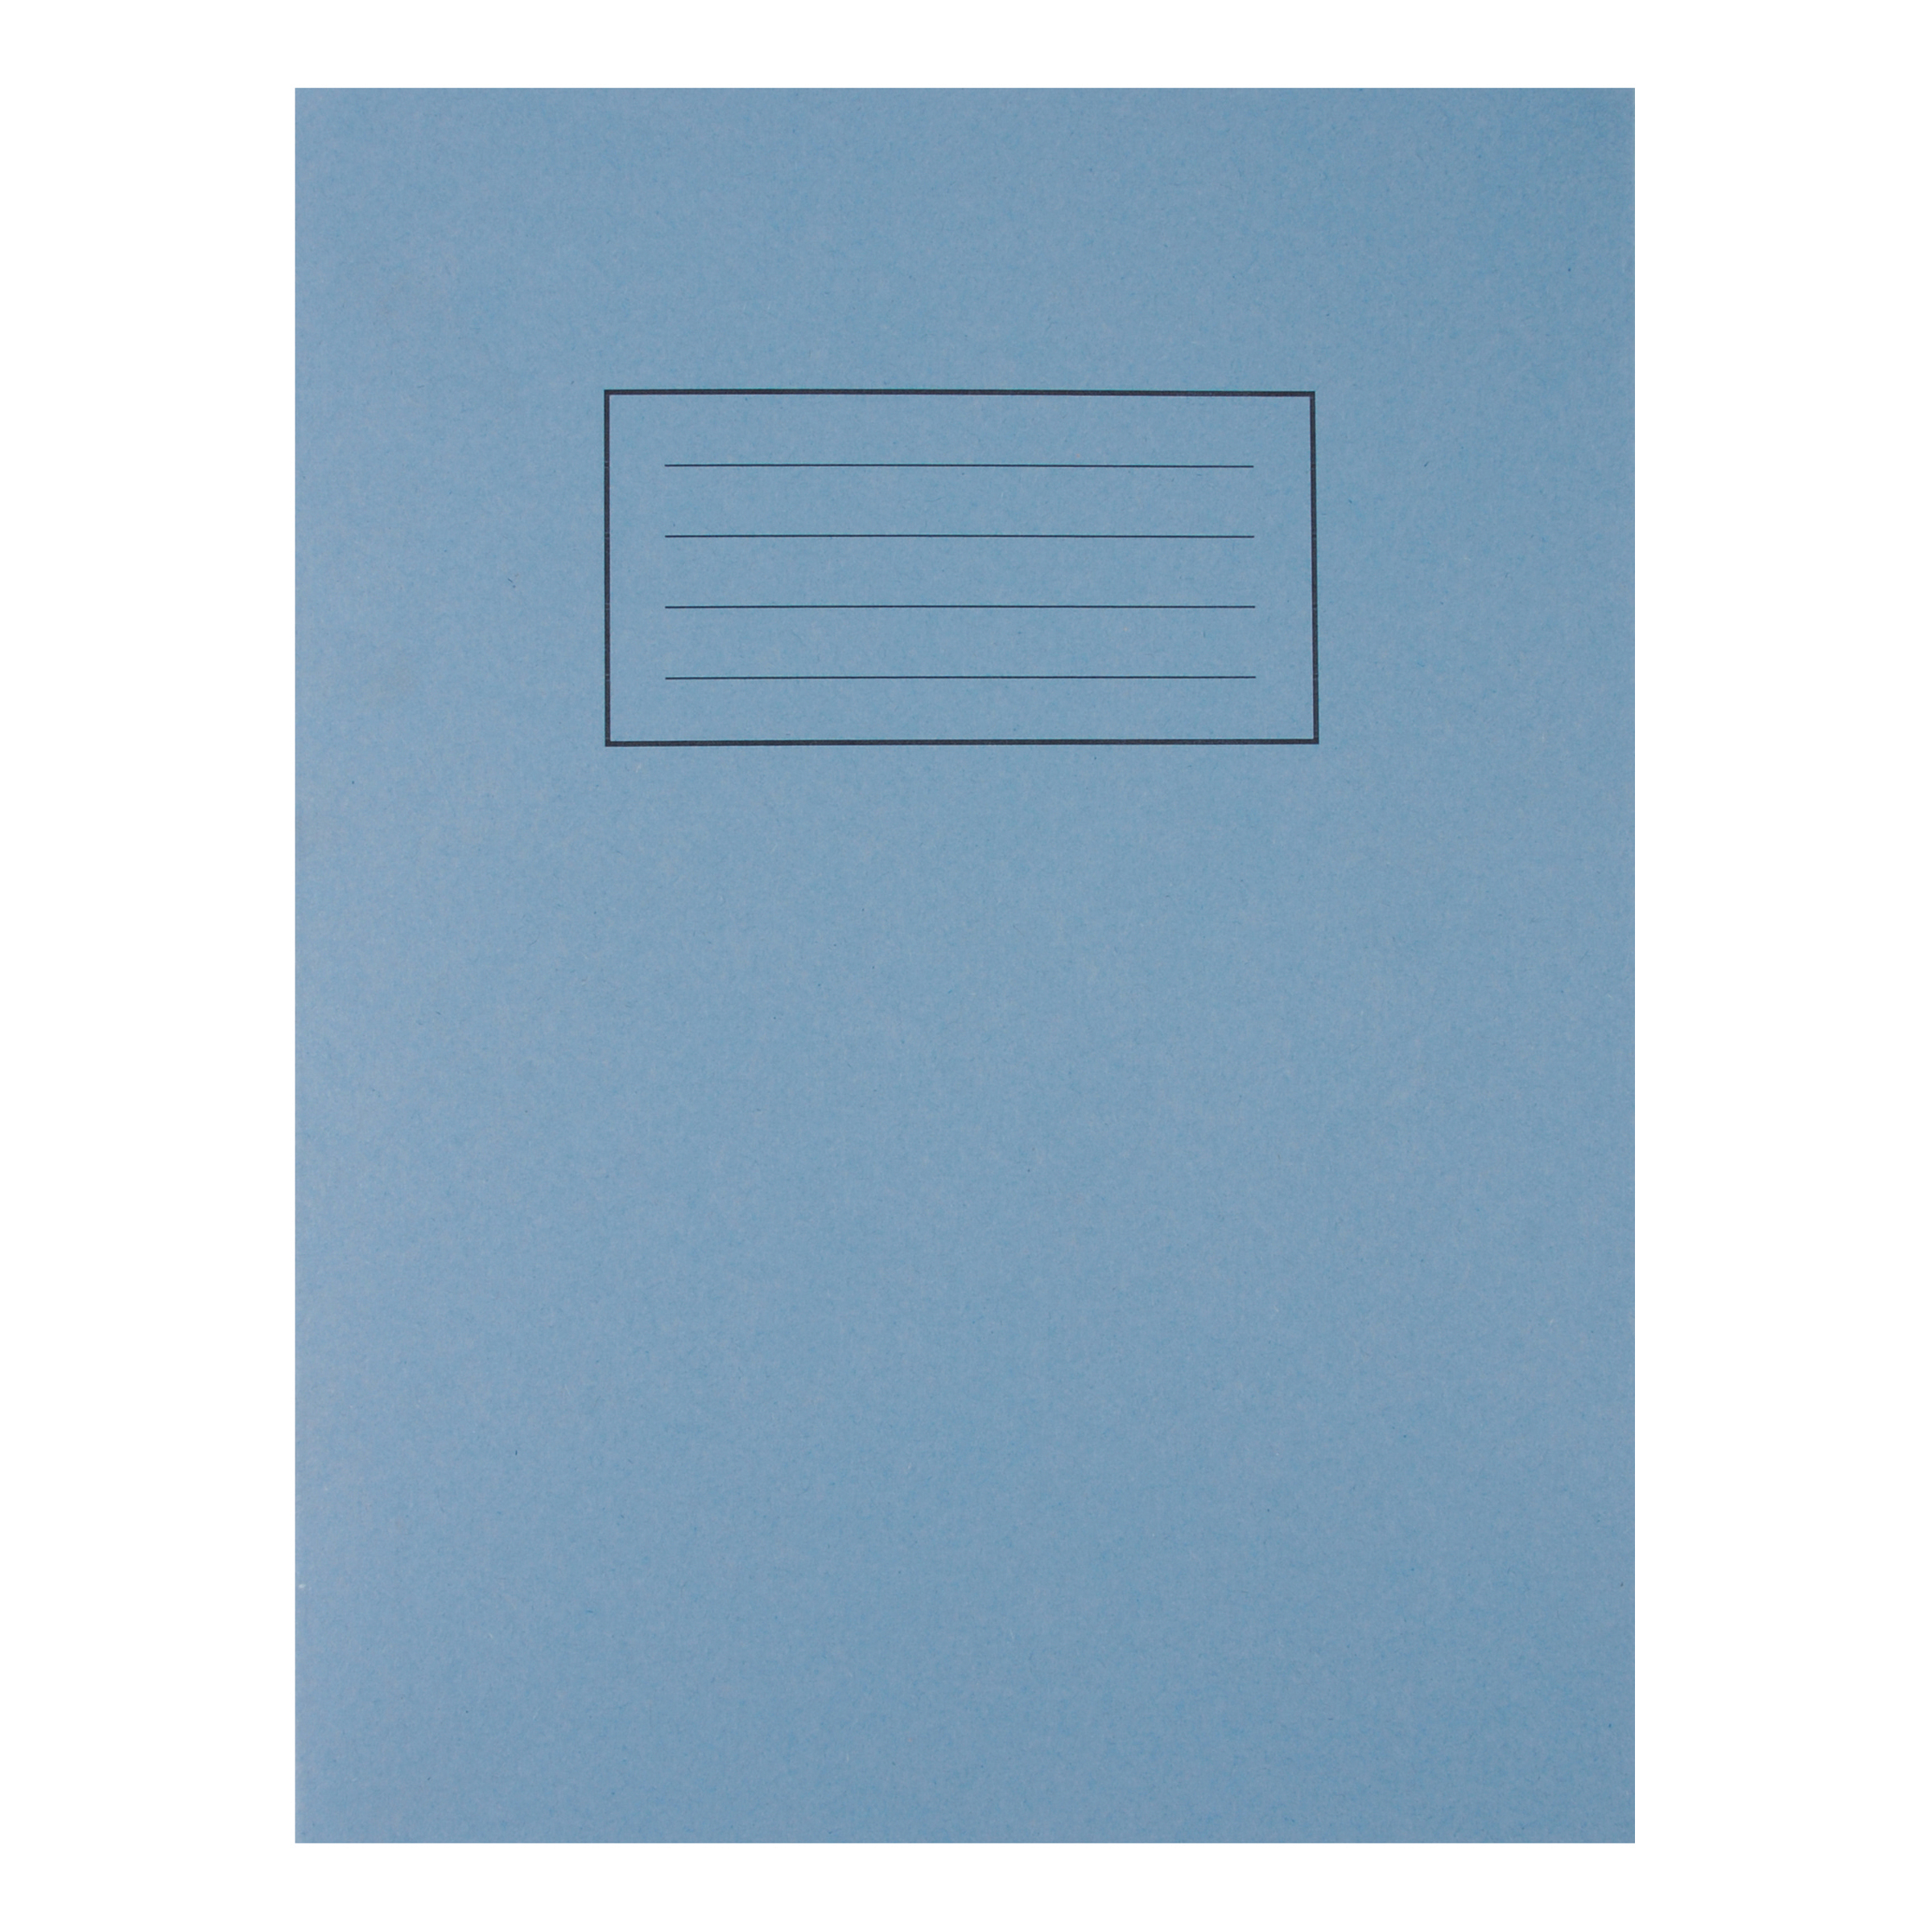 Exercise Books Silvine Exercise Book Ruled and Margin 80 Pages 75gsm 229x178mm Blue Ref EX104 Pack 10